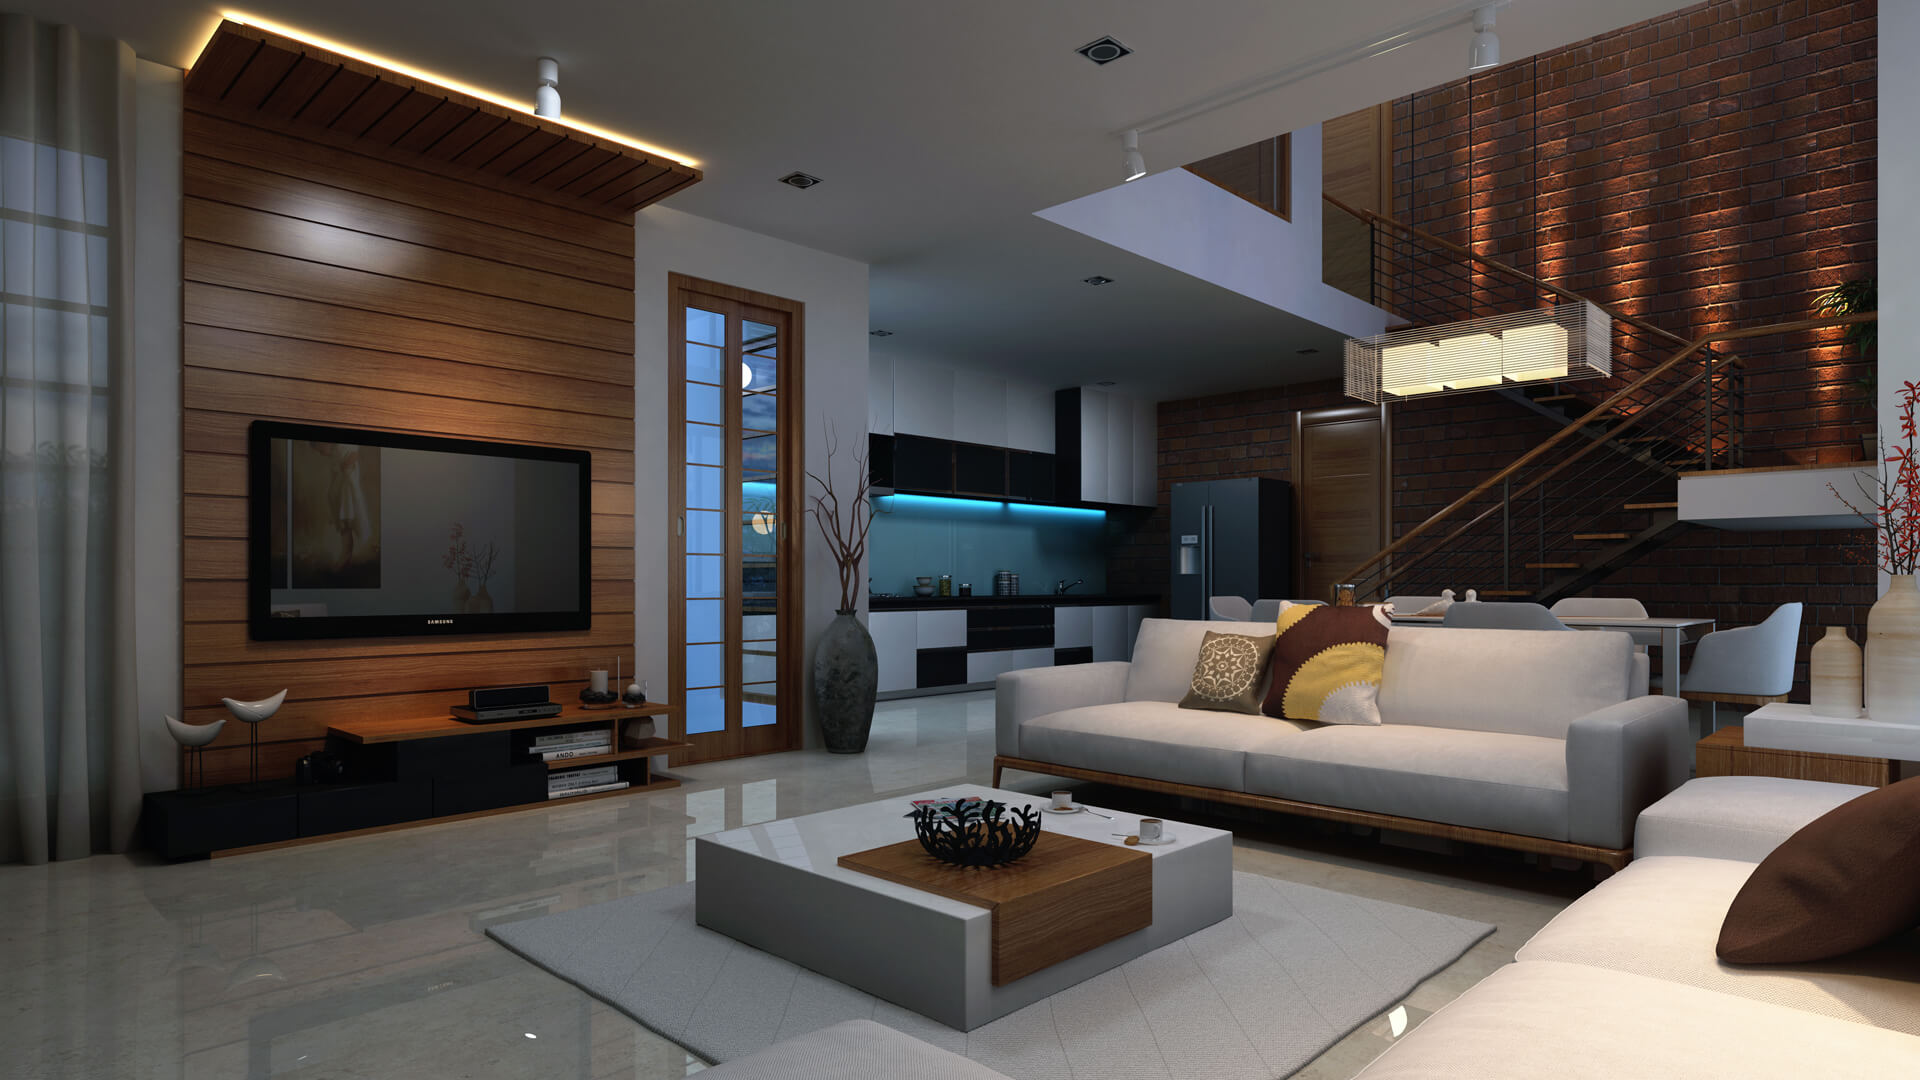 & 3d Home Bedroom Interior Design